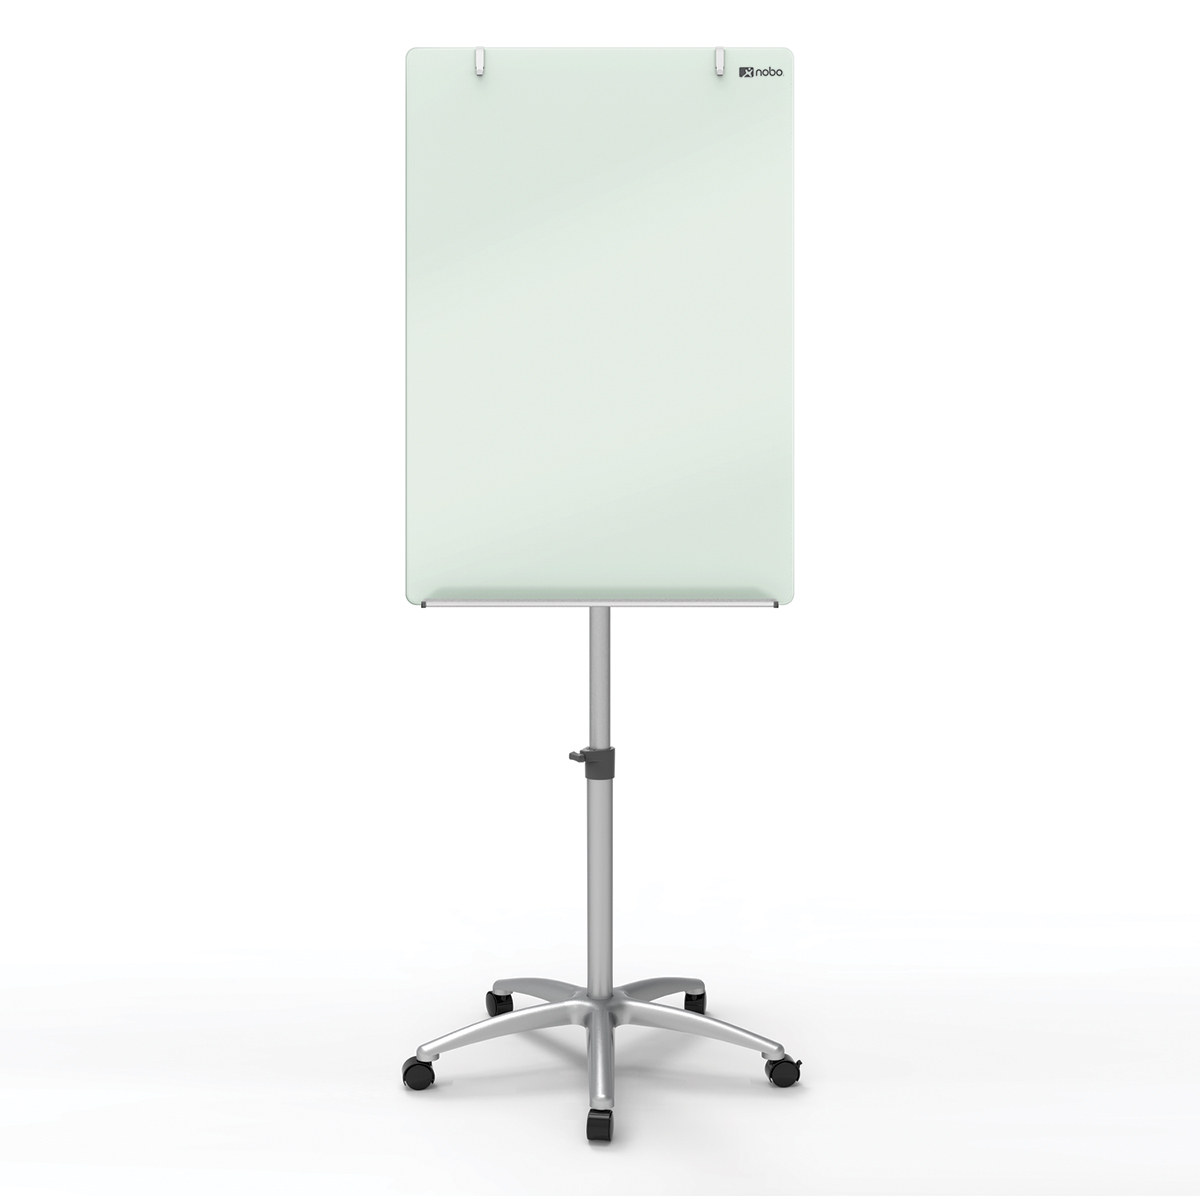 Nobo 1903949 Diamond Glass Mobile Magnetic Flipchart Easel